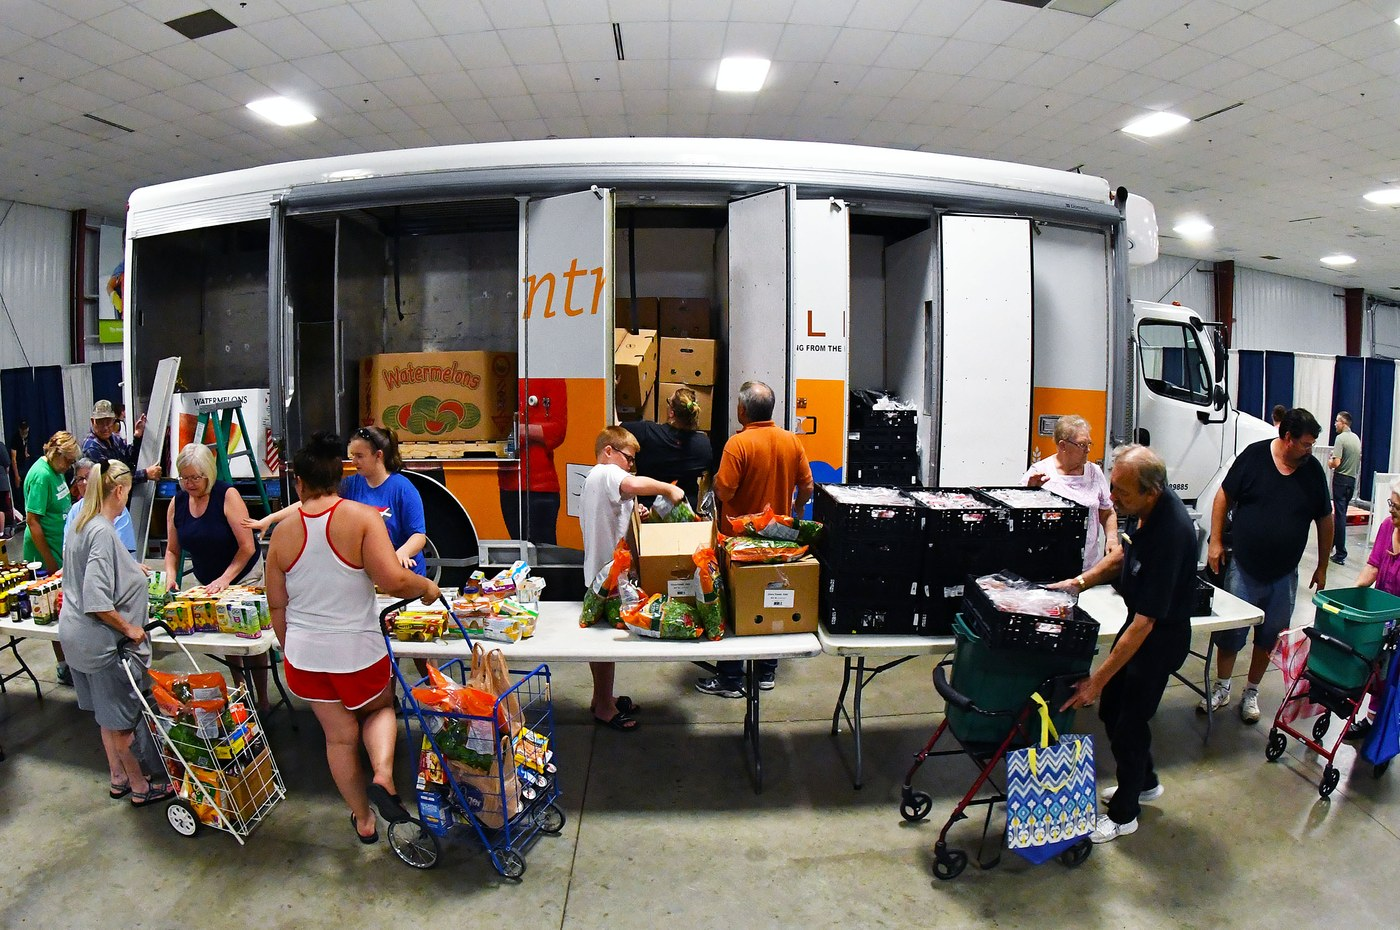 gleaners food bank_7.jpg